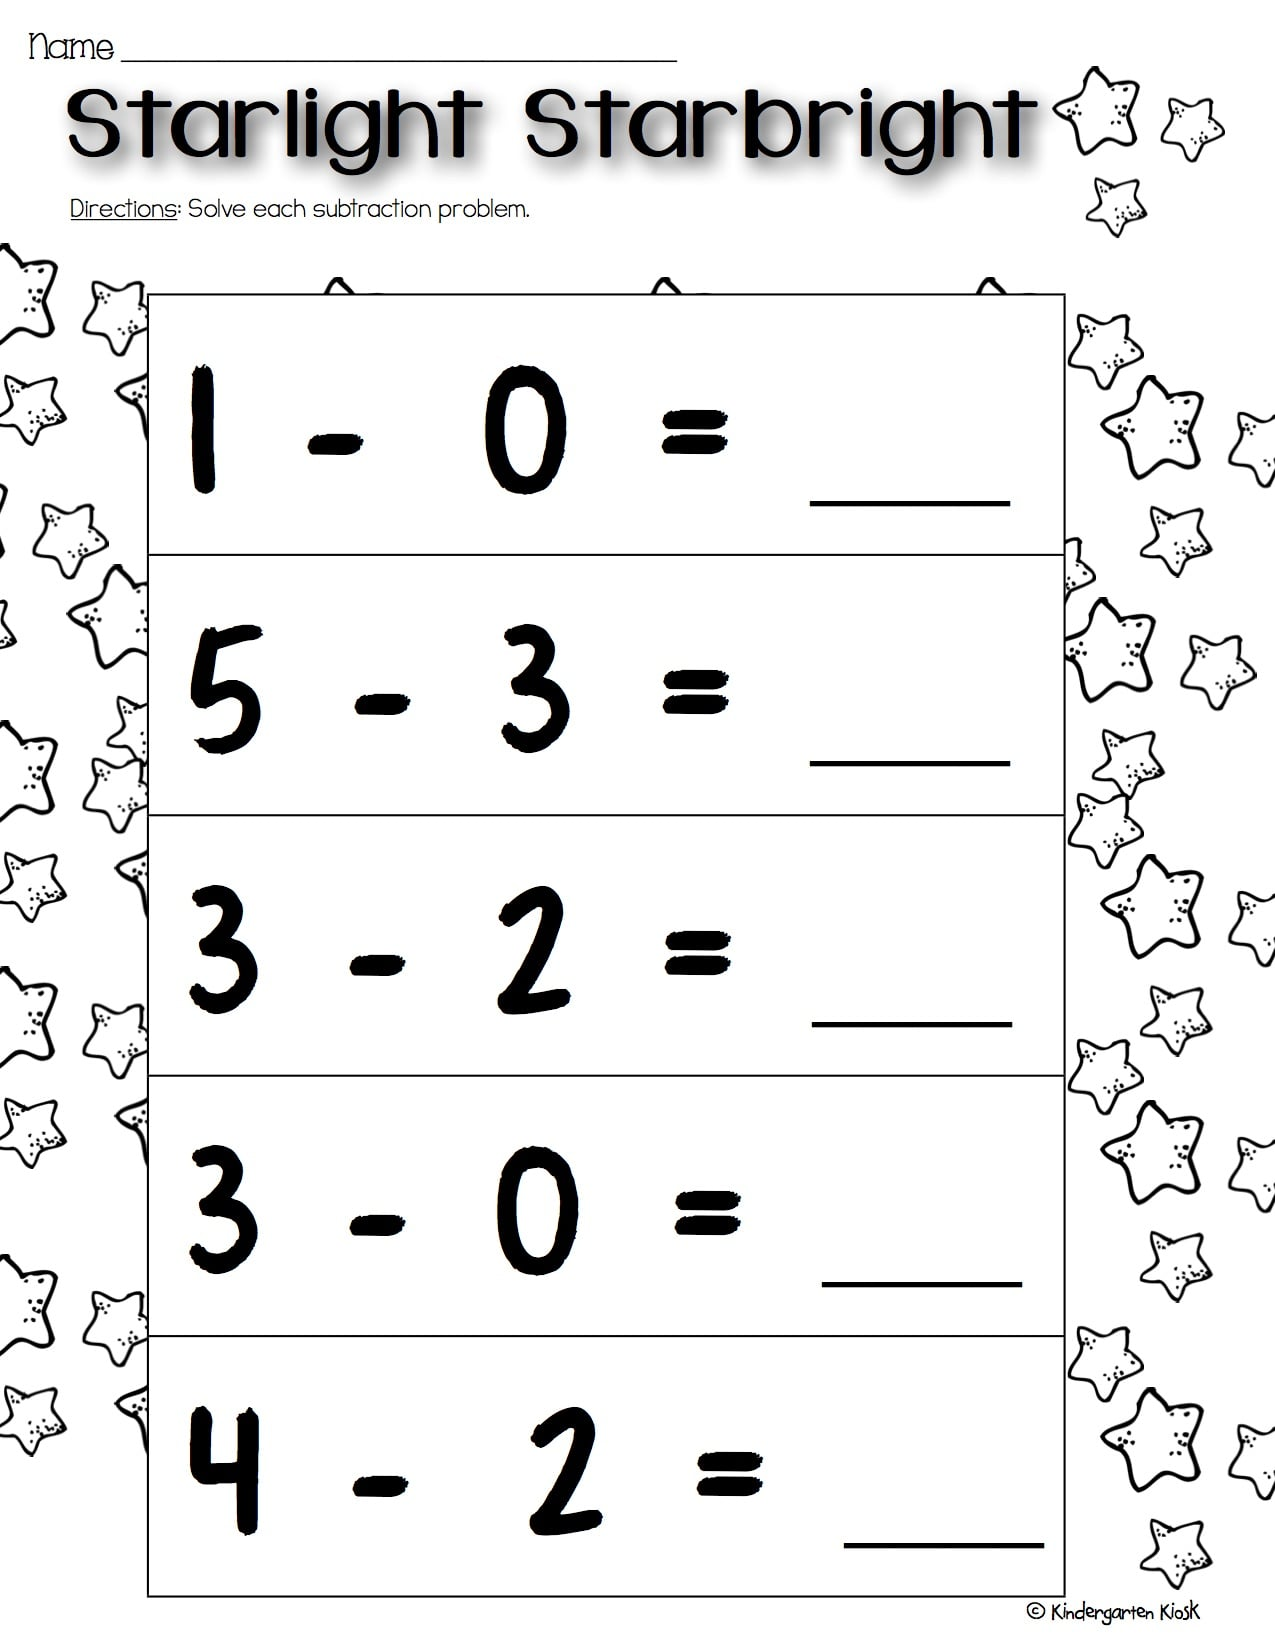 hight resolution of Kindergarten Subtraction Worksheets — Kindergarten Kiosk